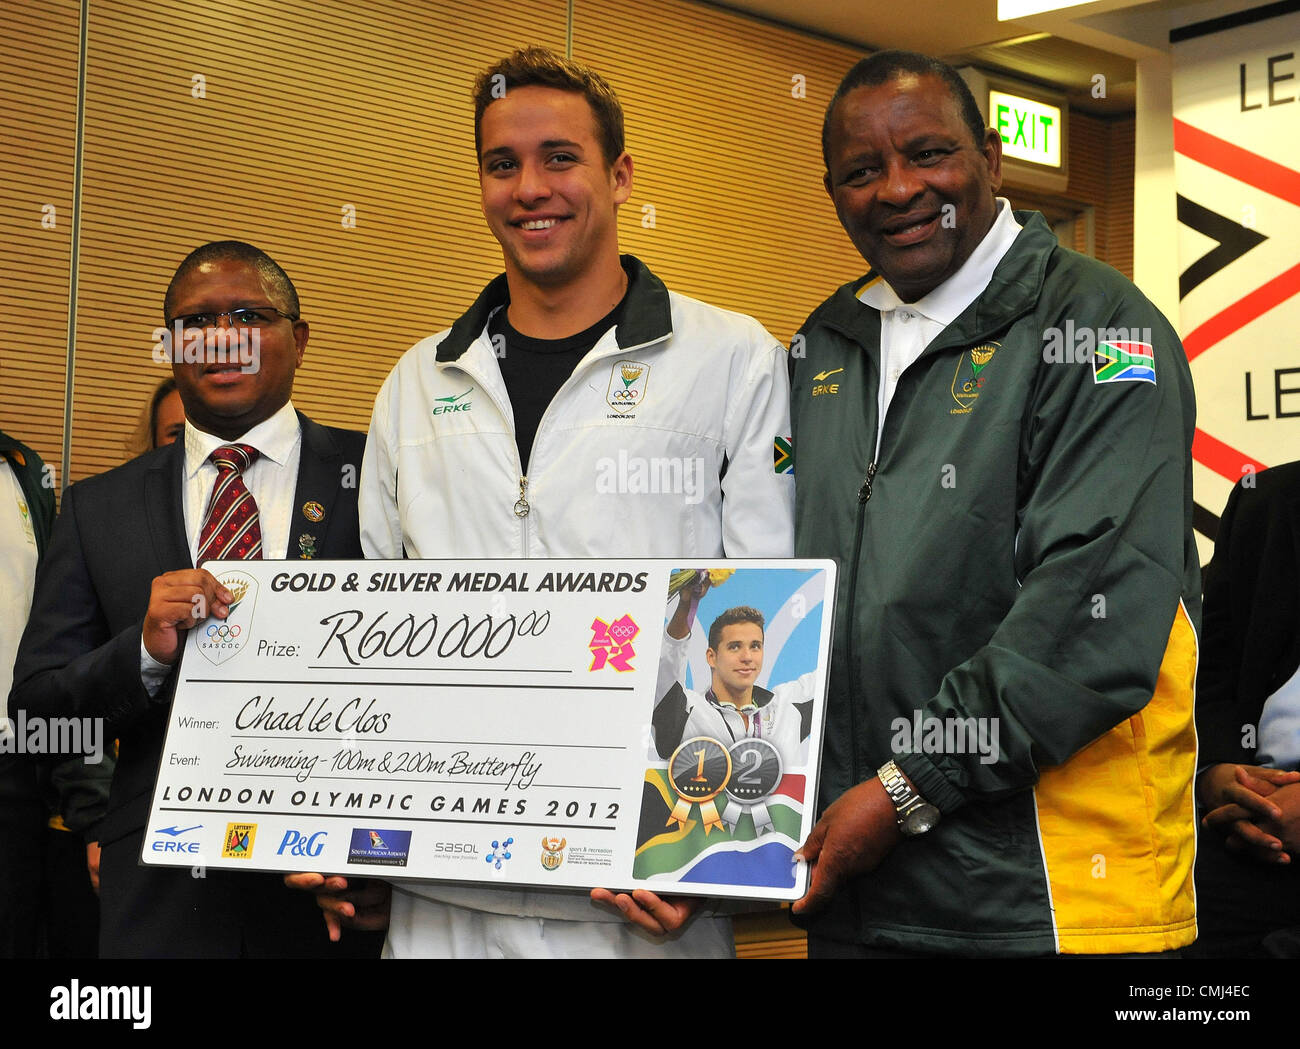 14th Aug 2012 Johannesburg, South Africa. Chad le Clos with Fikile Mdlalula and Gideon Sam during the South African - Stock Image